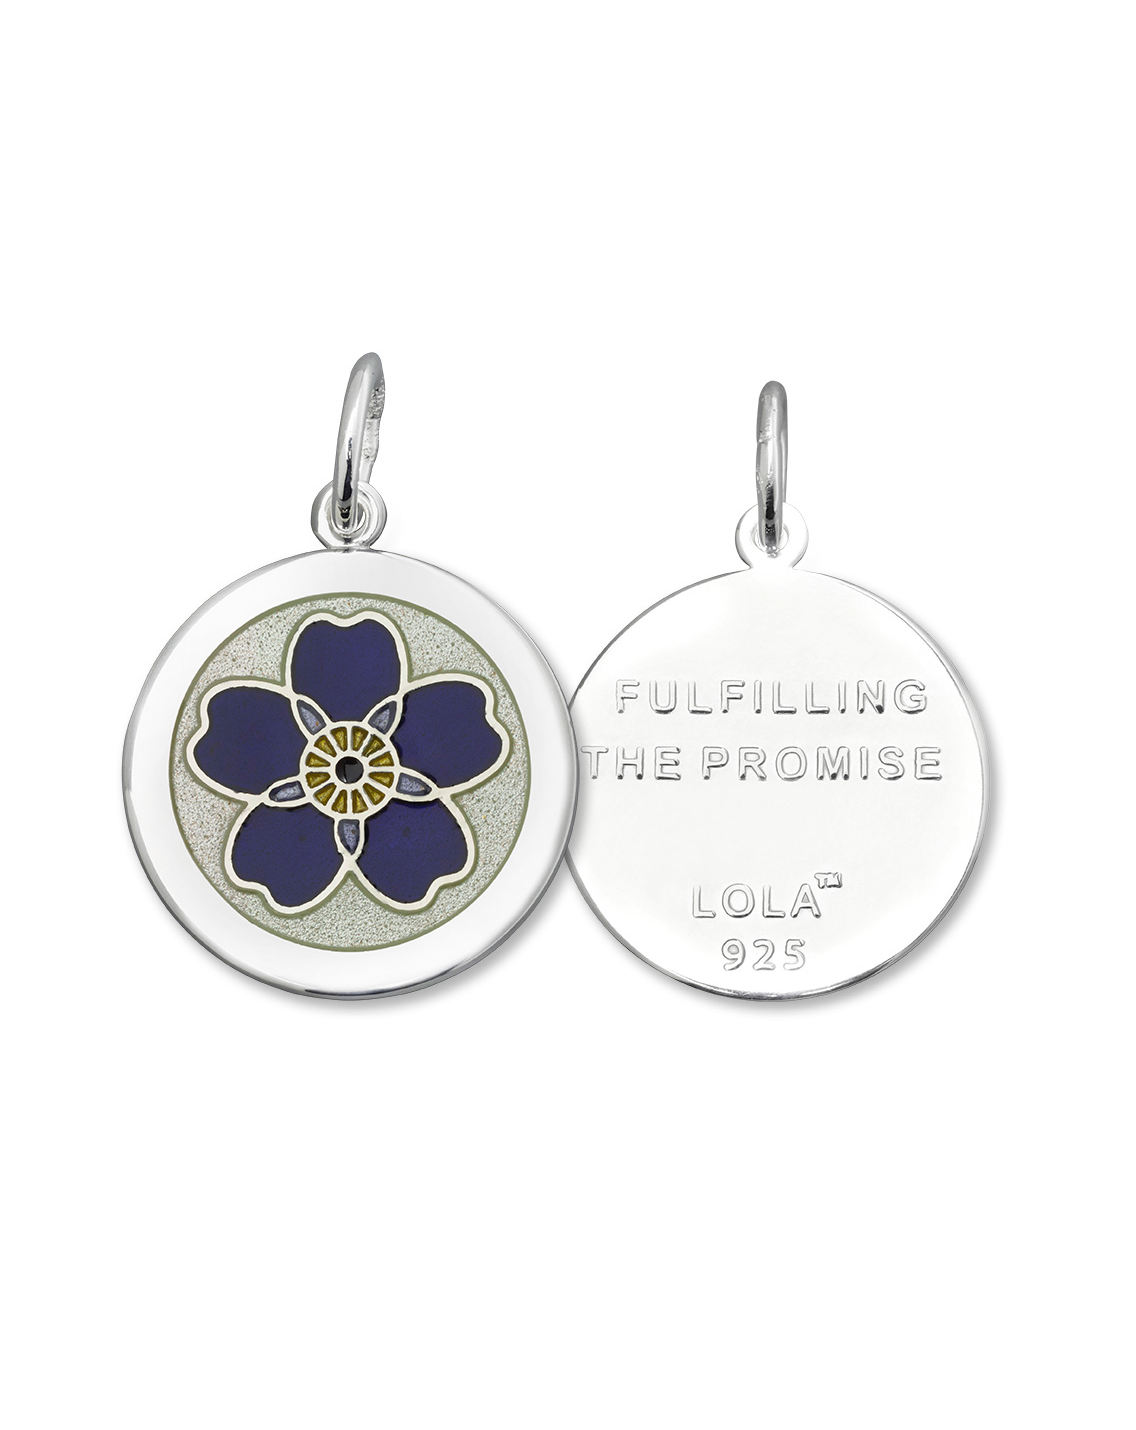 Exclusive Lola Forget Me Not Pendant